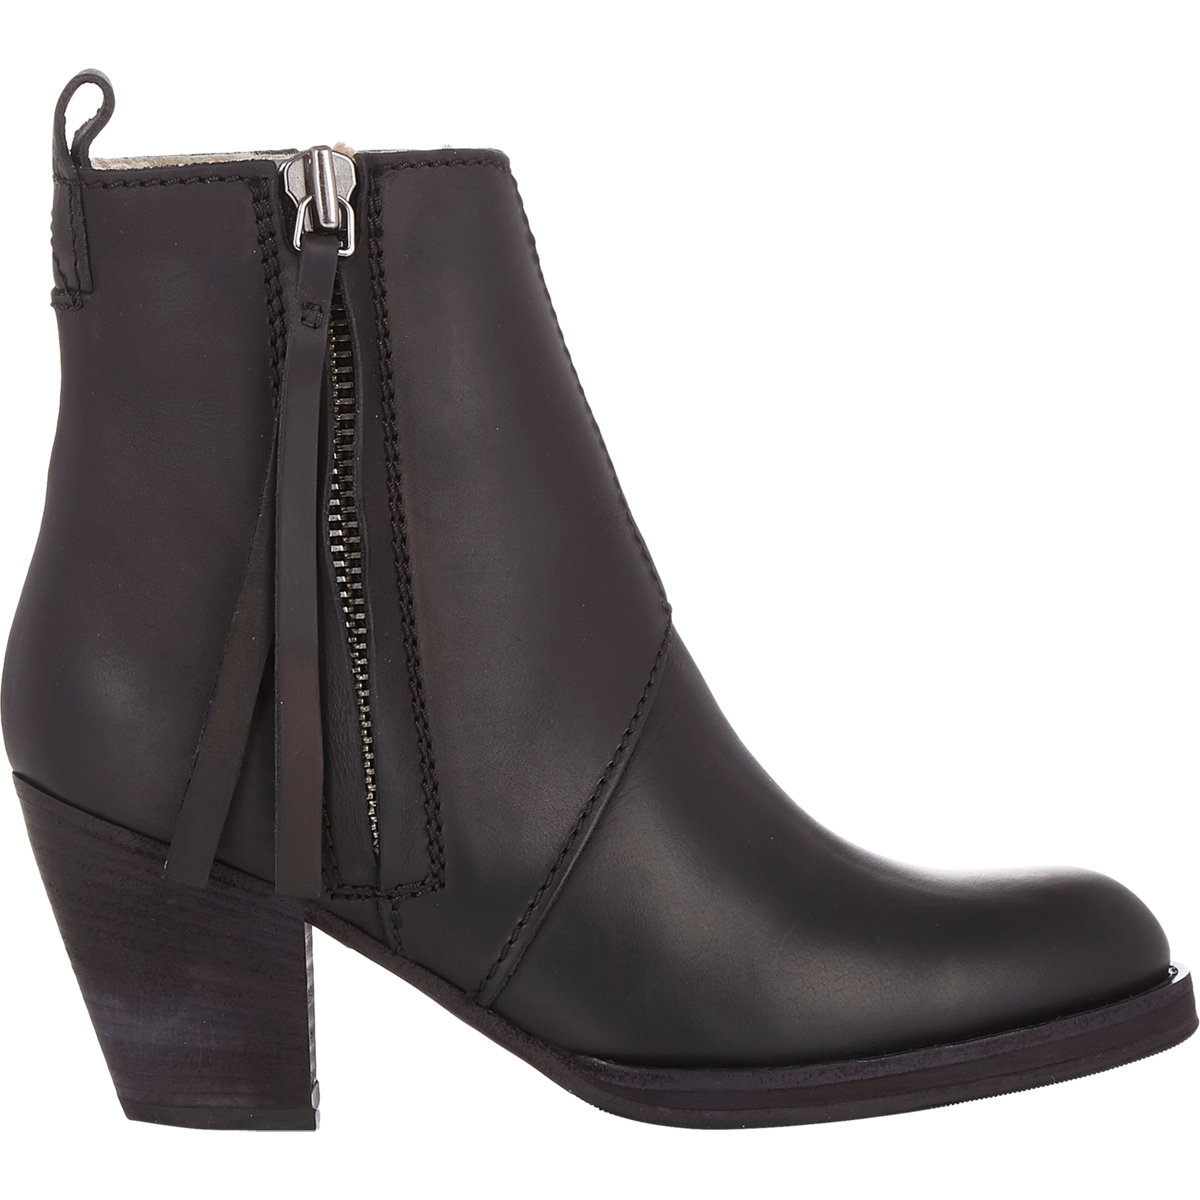 acne studios women 39 s shearling lined pistol boots in black lyst. Black Bedroom Furniture Sets. Home Design Ideas